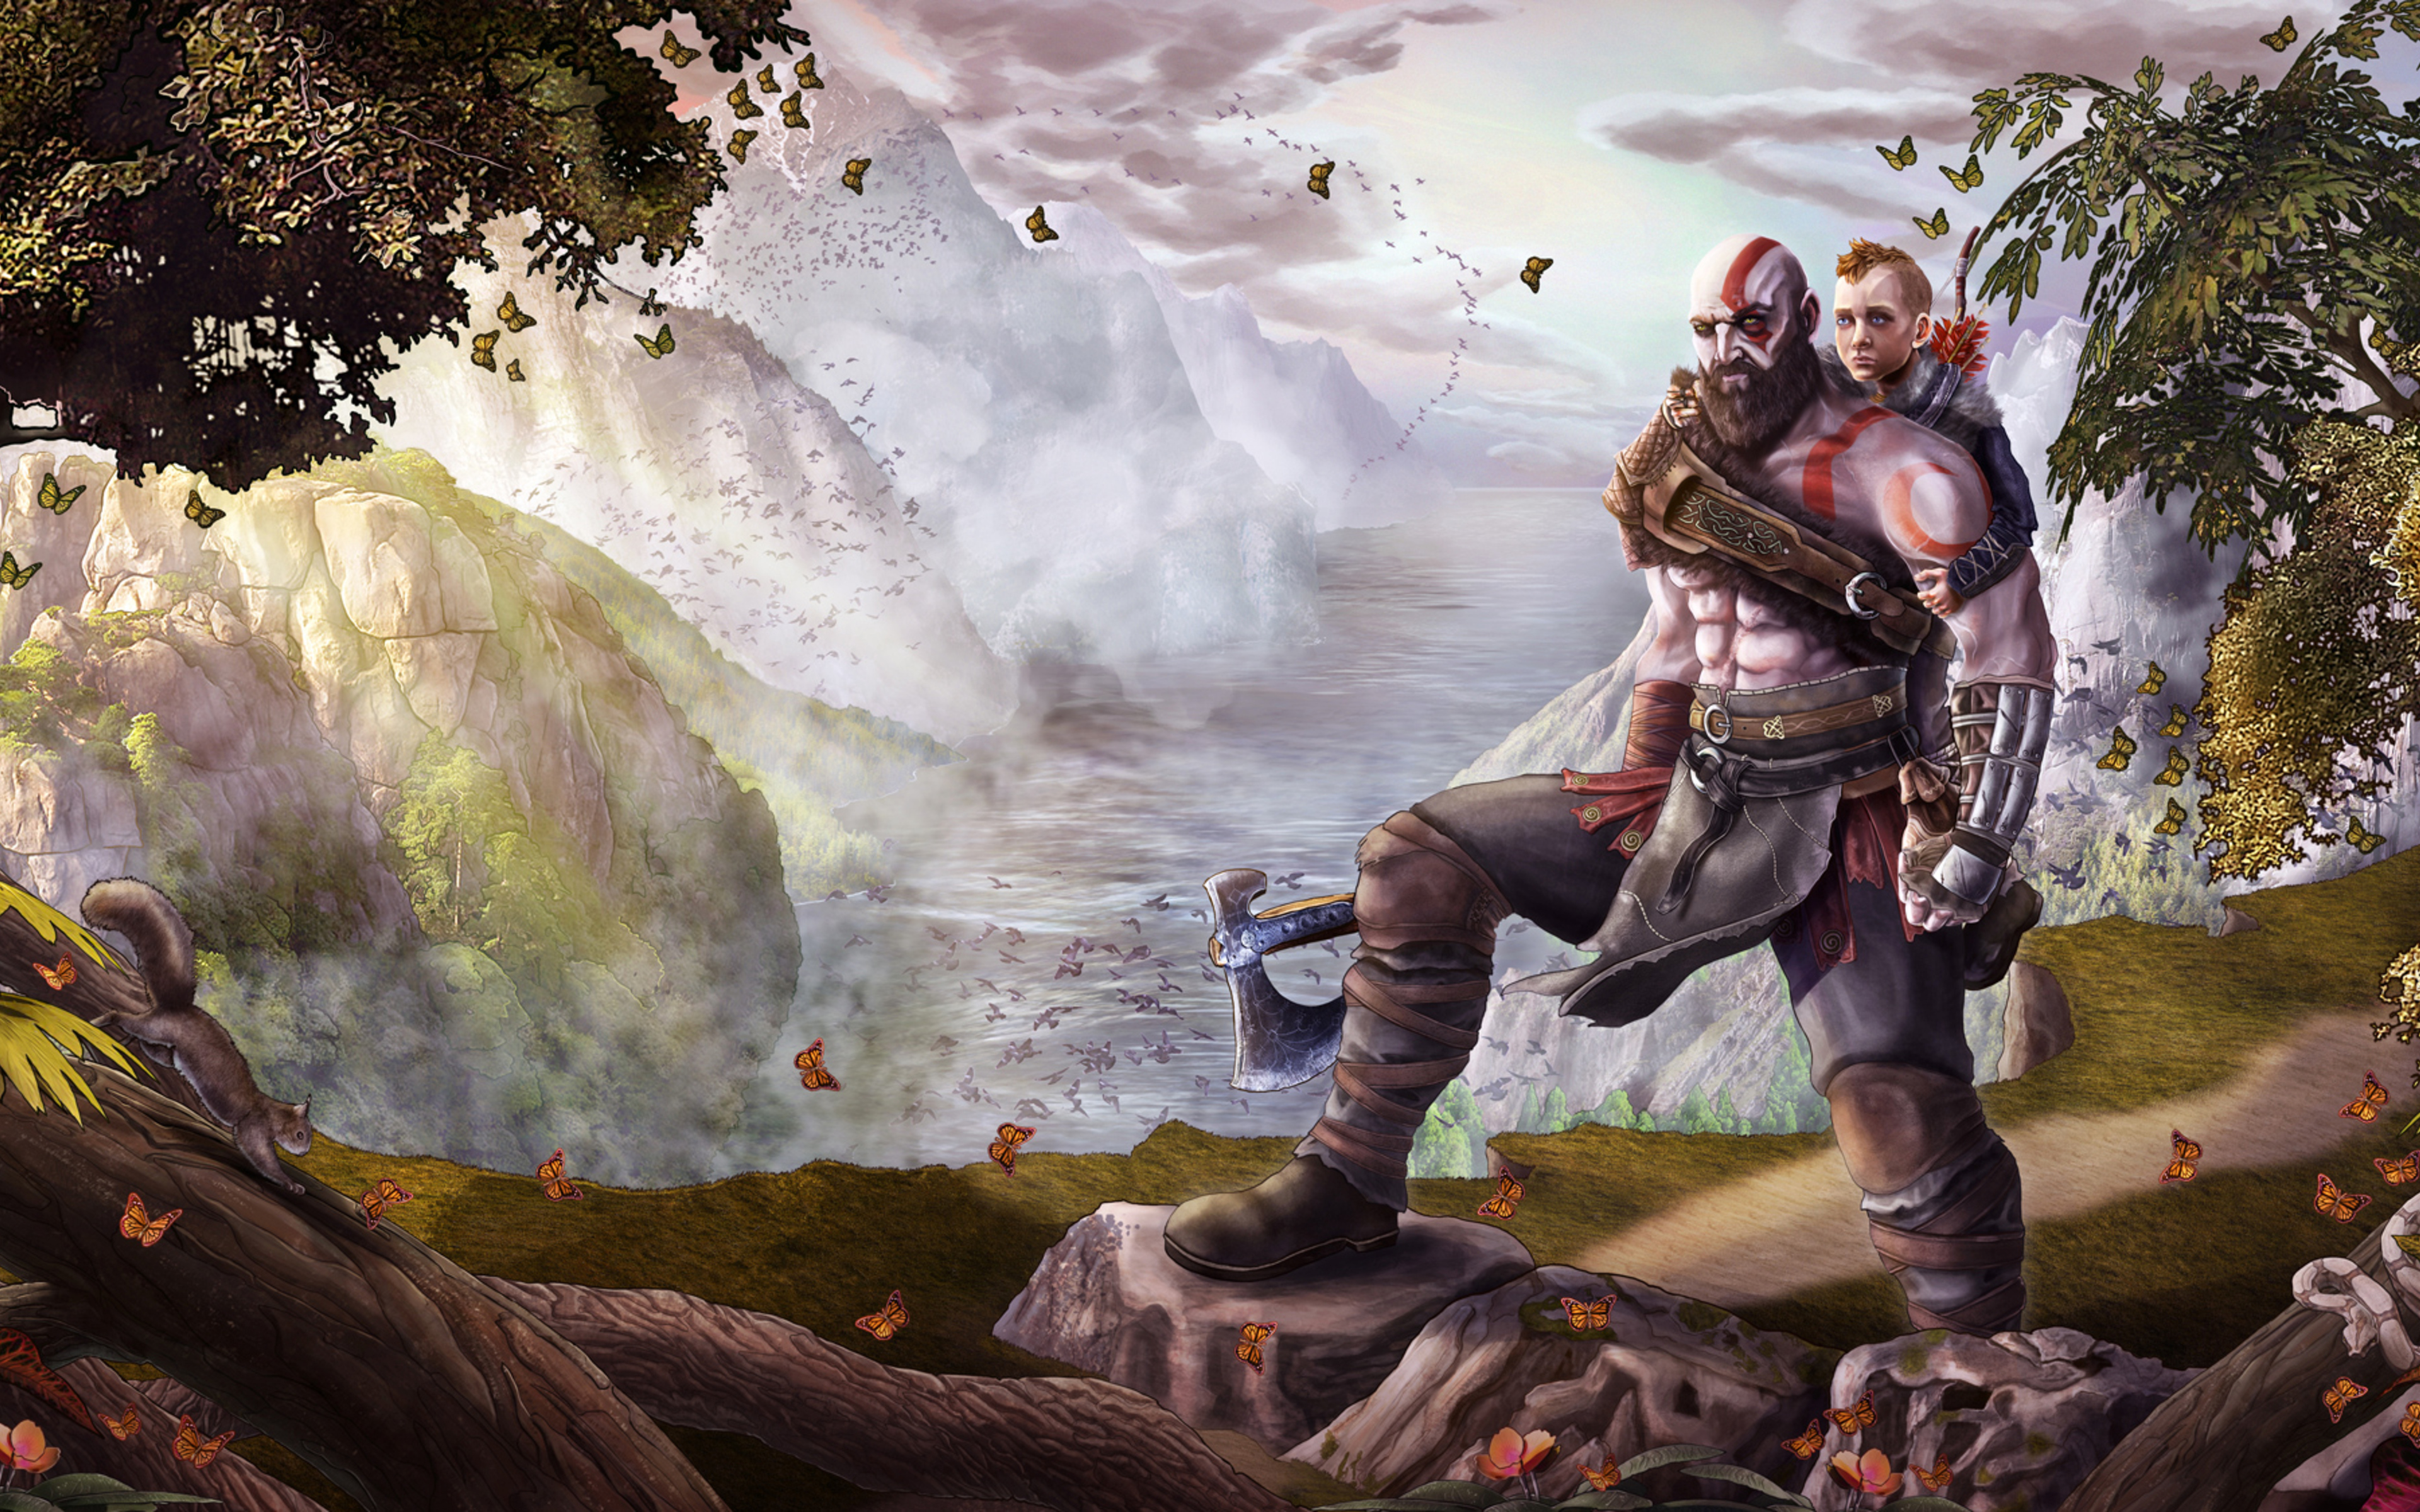 god-of-war-atreus-kratos-fan-art-a5.jpg